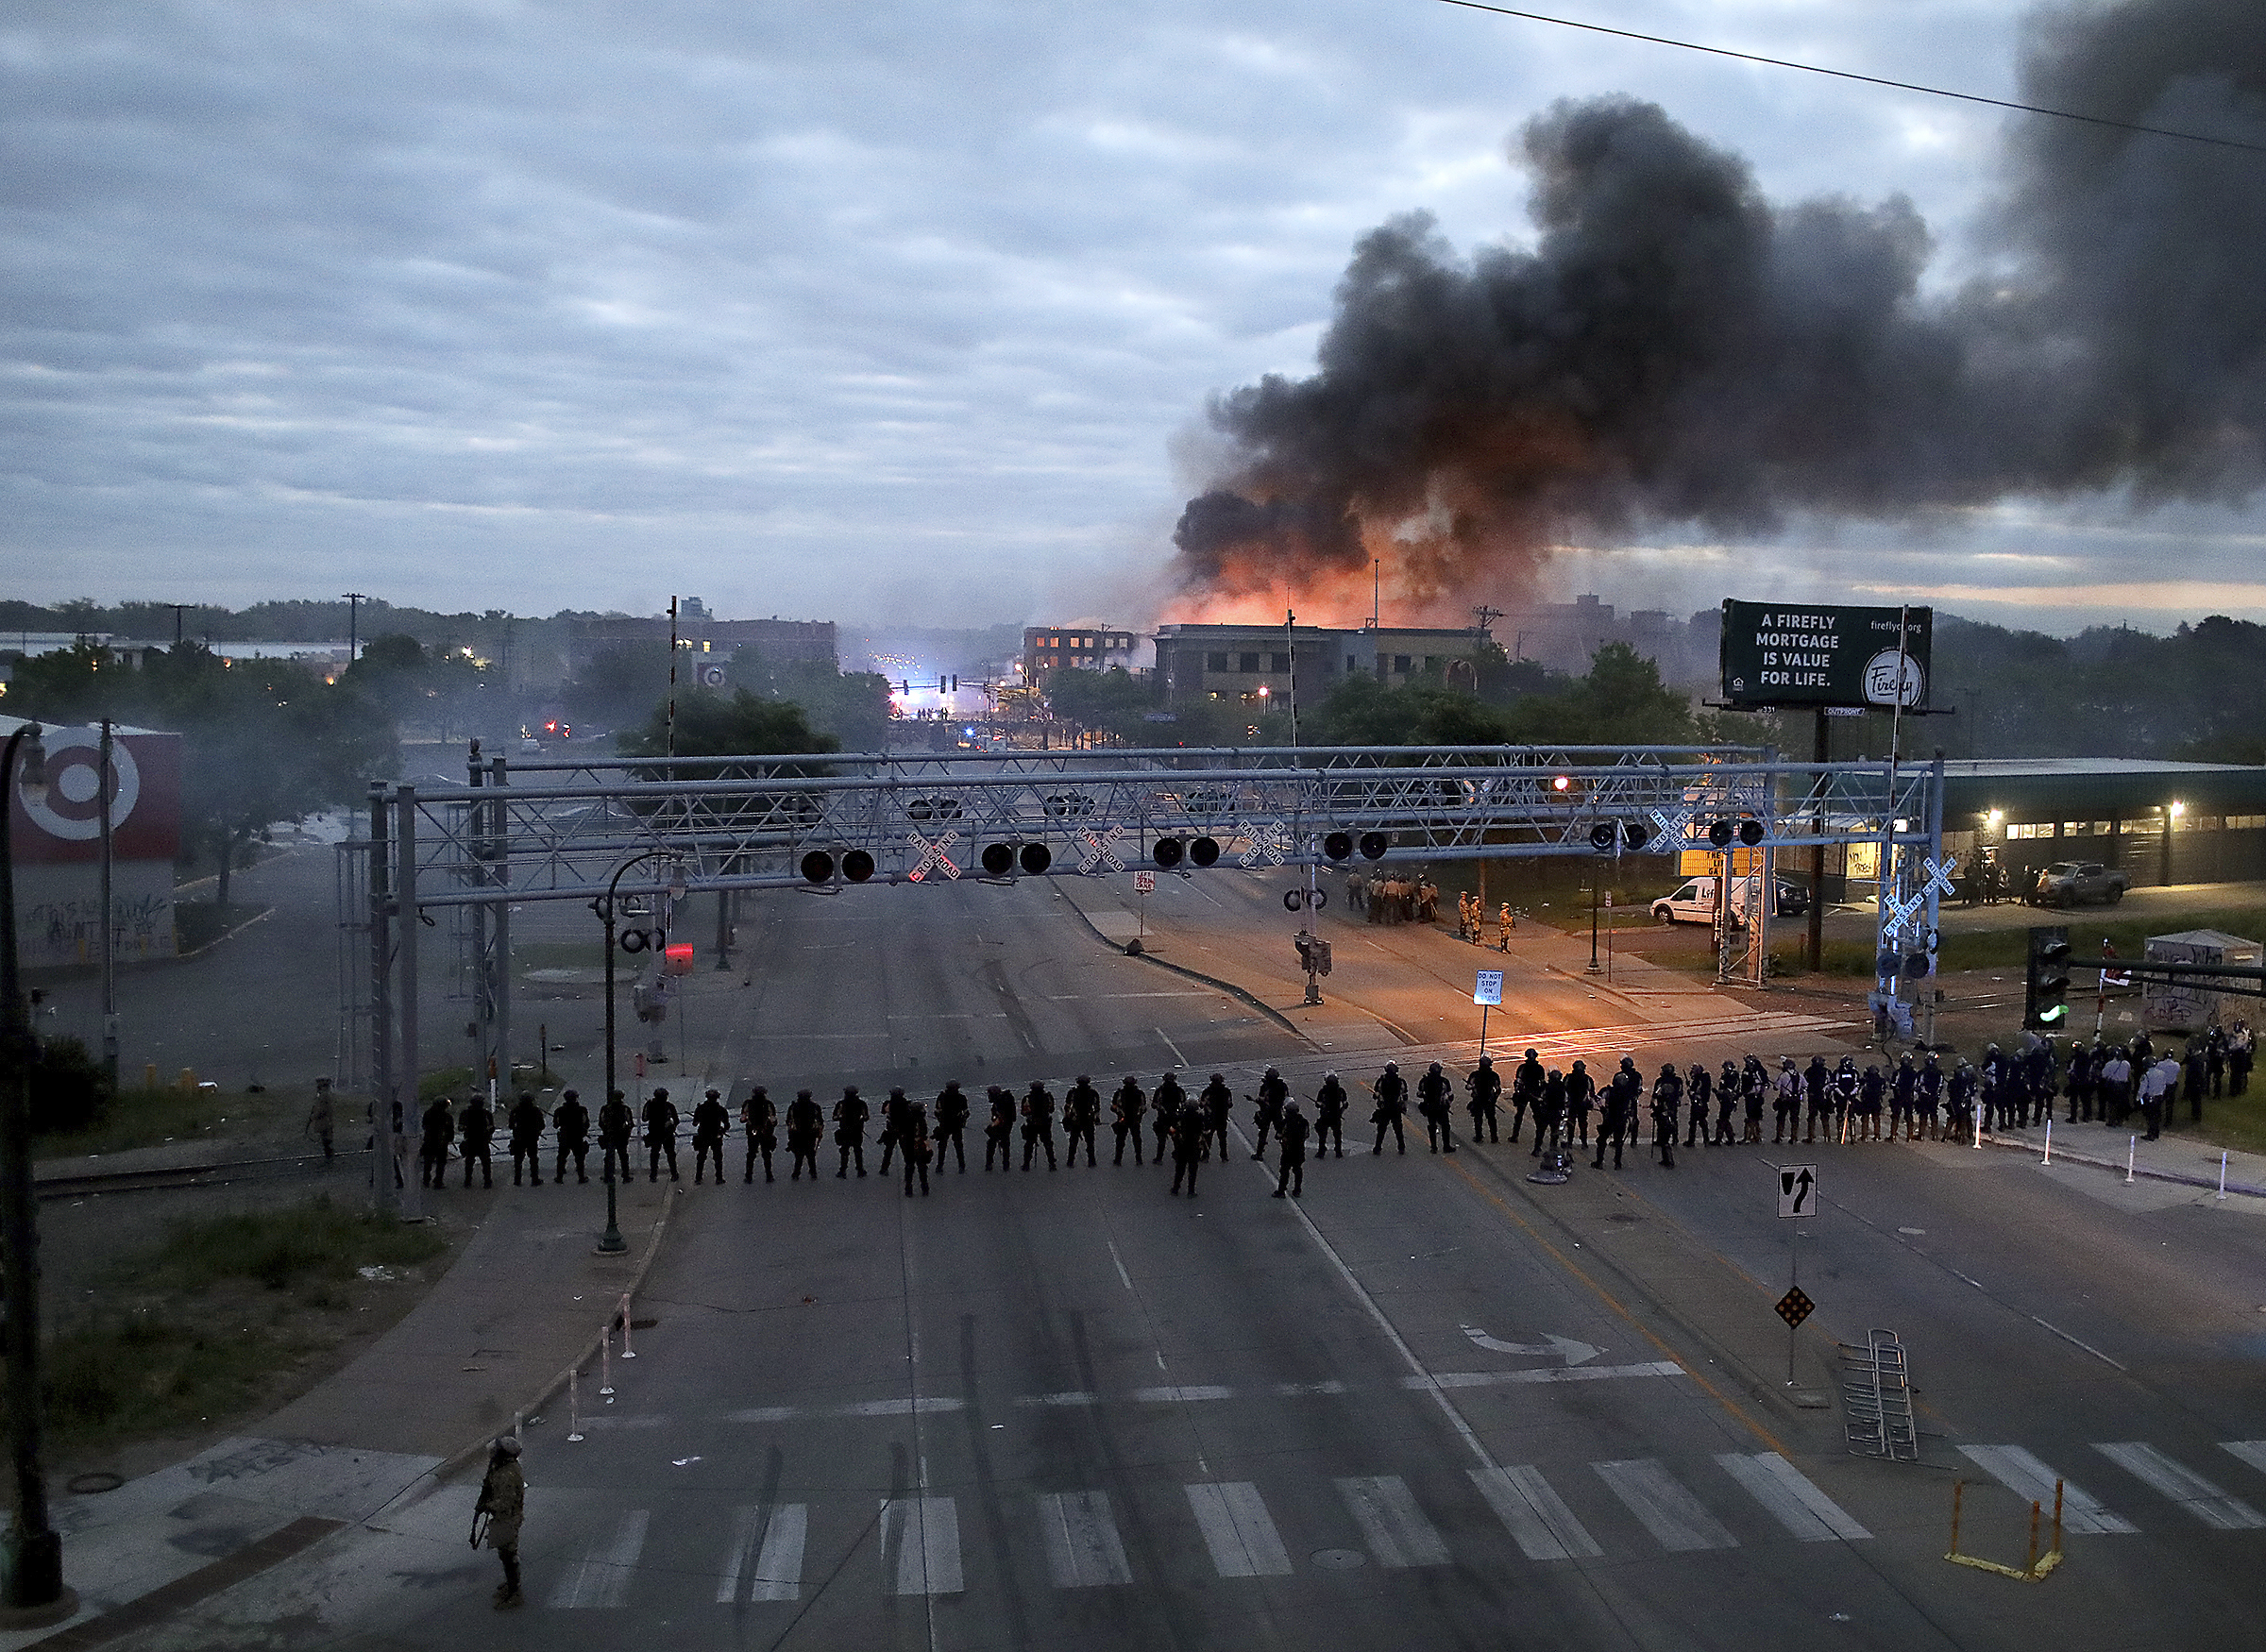 Law enforcement officers amassed along Lake Street near Hiawatha Ave. as fires burned after a night of unrest and protests in the death of George Floyd in Minneapolis, Minn. on May 29.